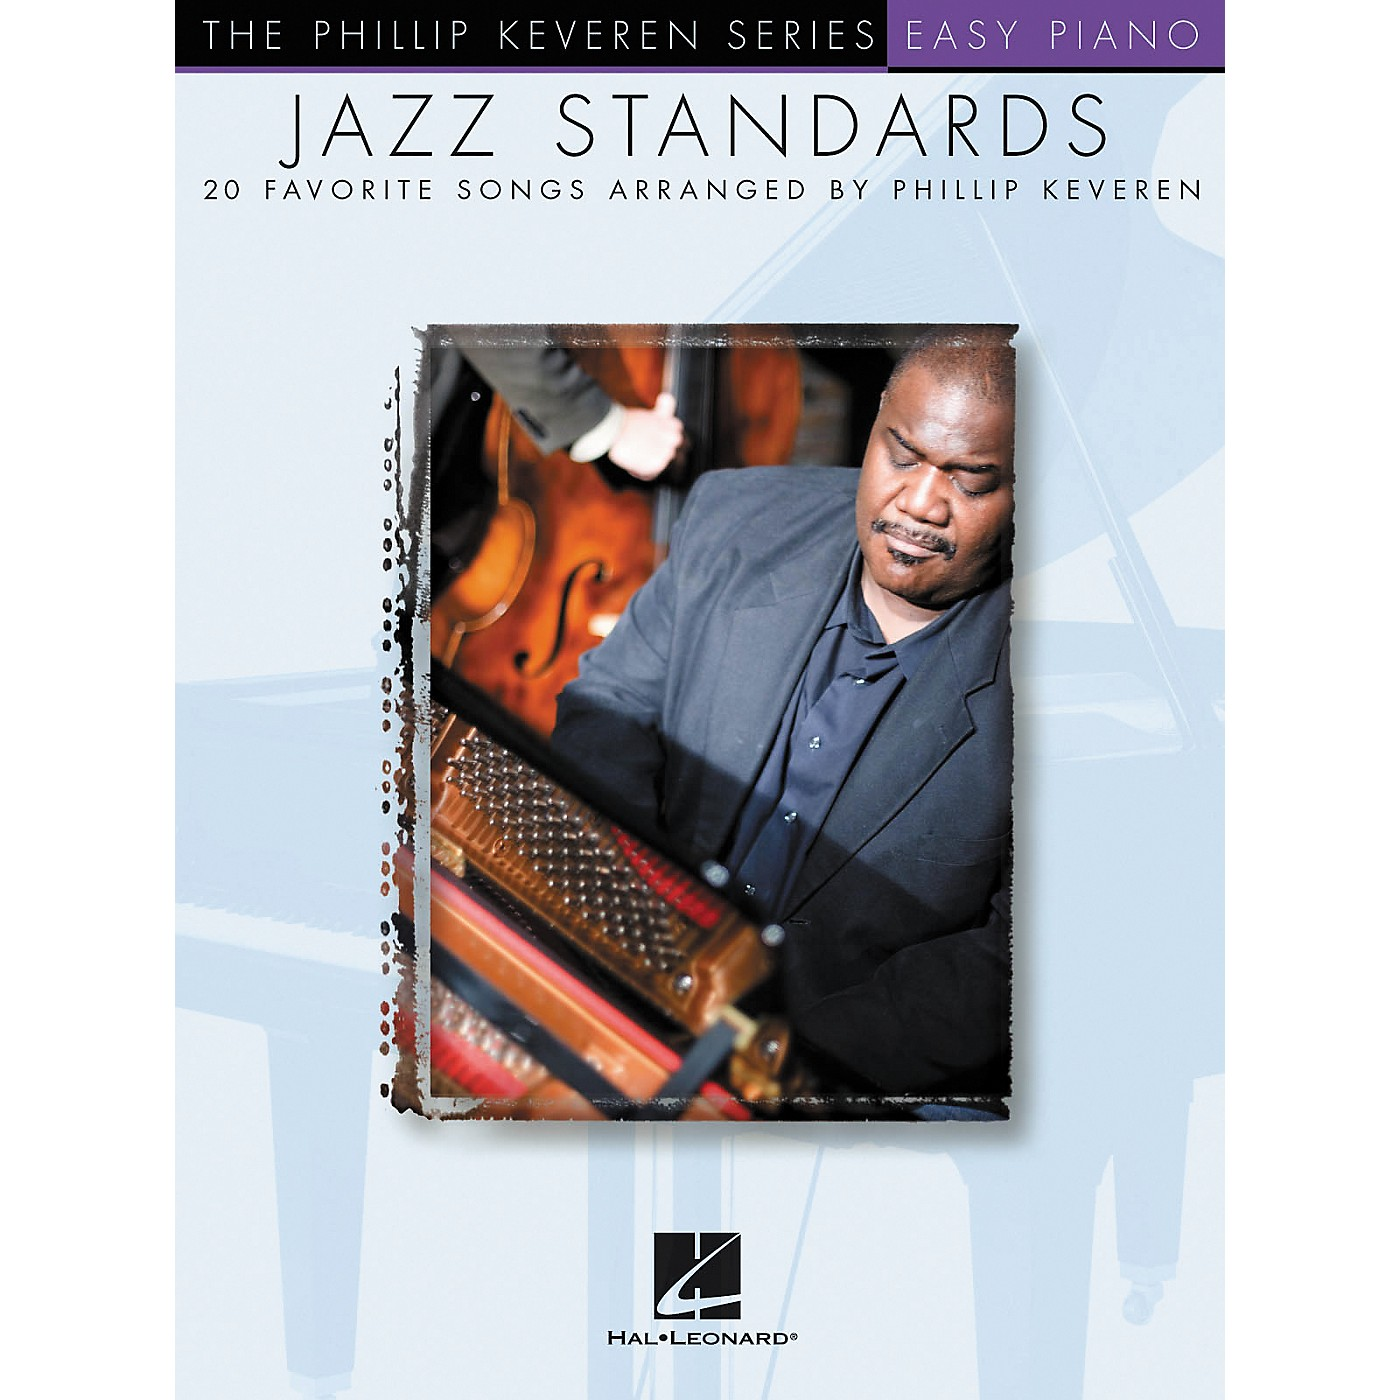 Hal Leonard Jazz Standards - Phillip Keveren Series For Easy Piano thumbnail